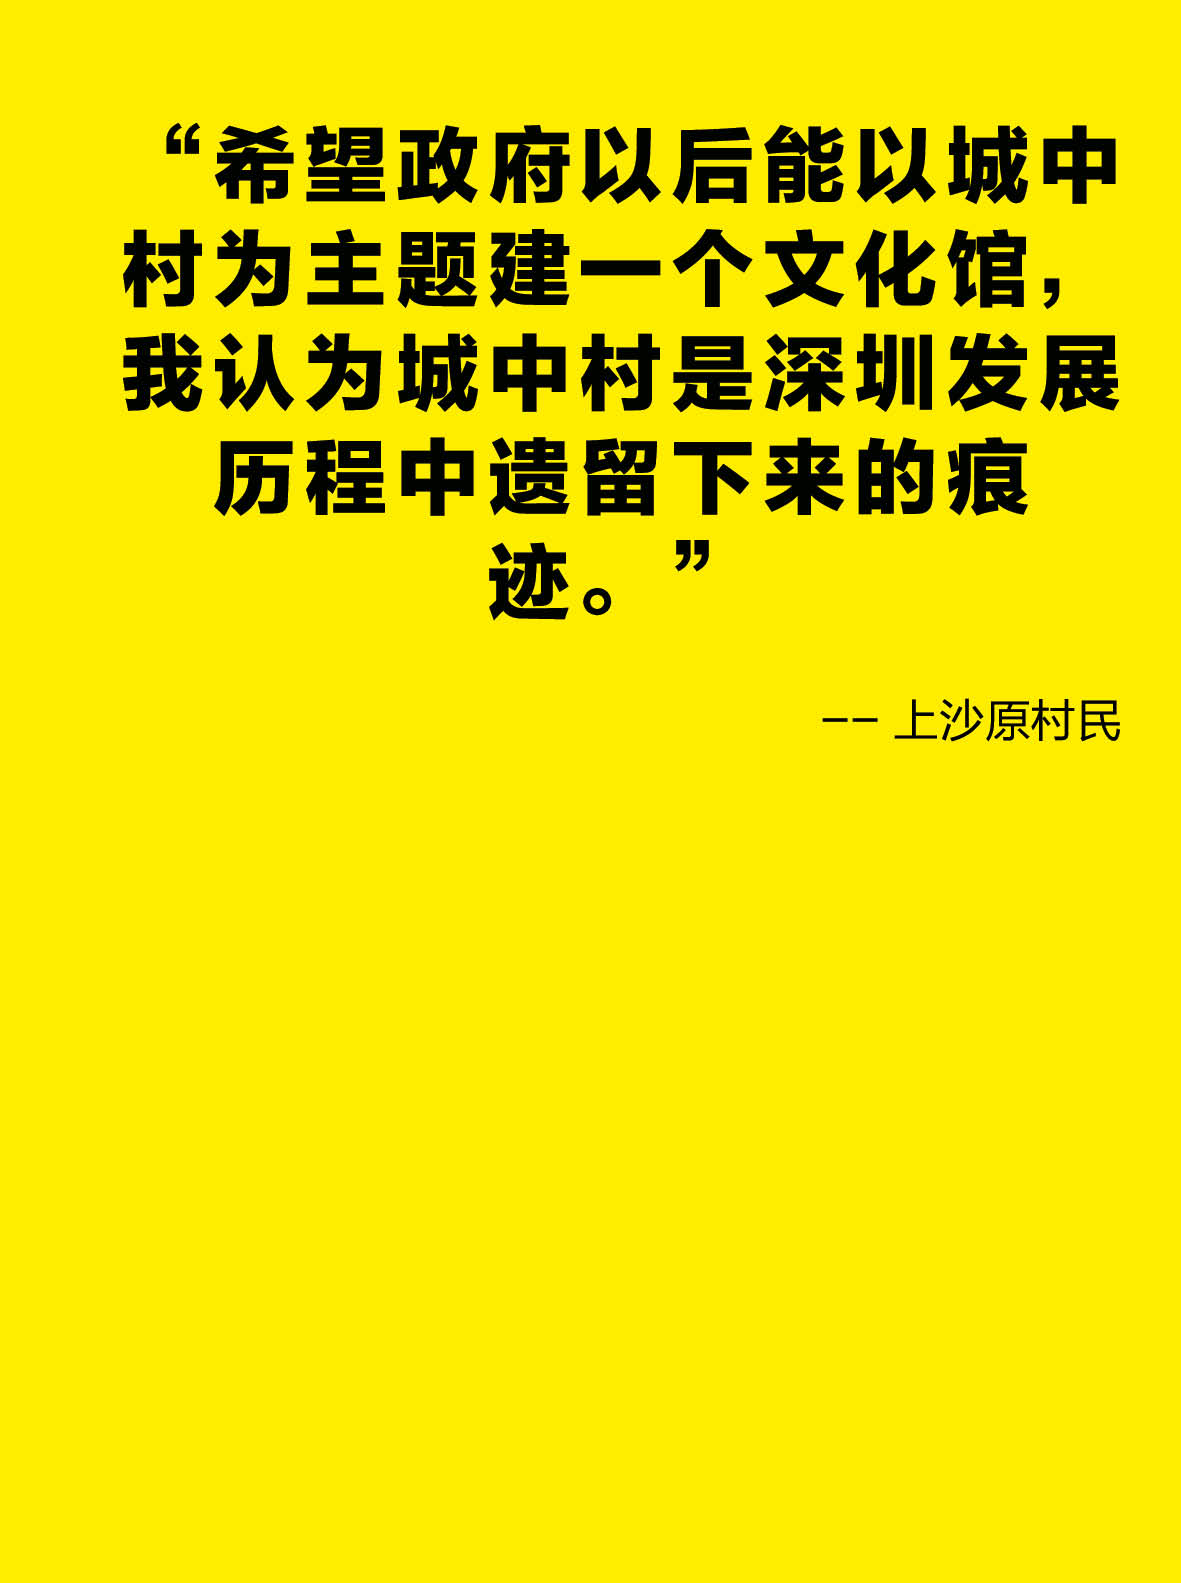 20180106_Shangsha Quotes test0312.jpg